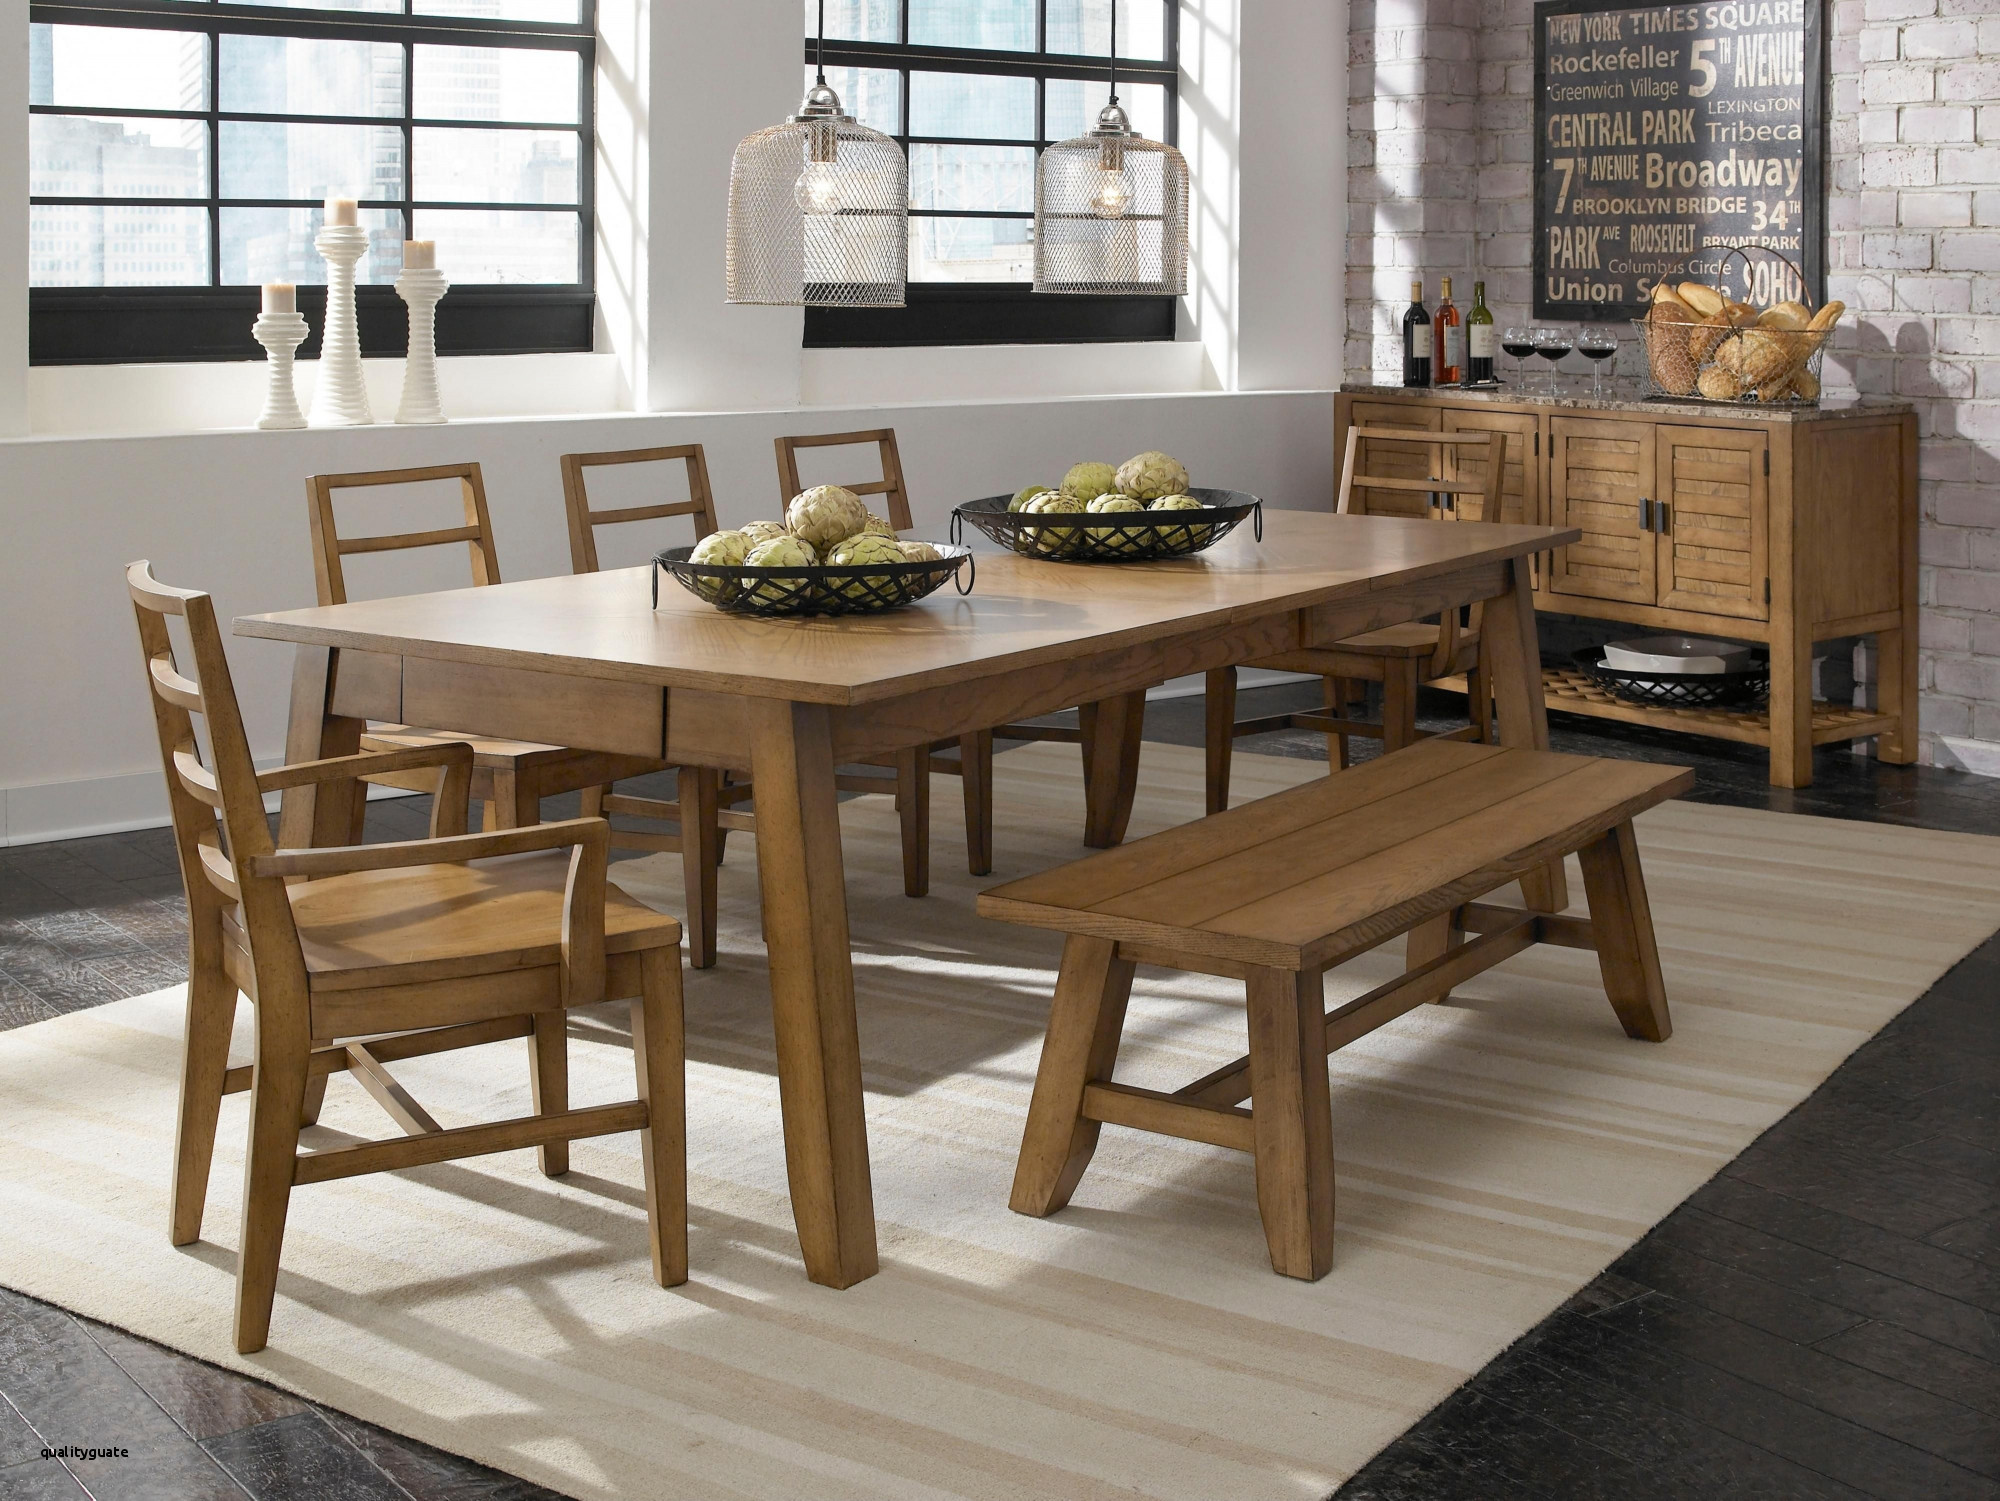 hardwood floor varieties of 39 fresh table chairs and bench set pattern throughout adsense fallback